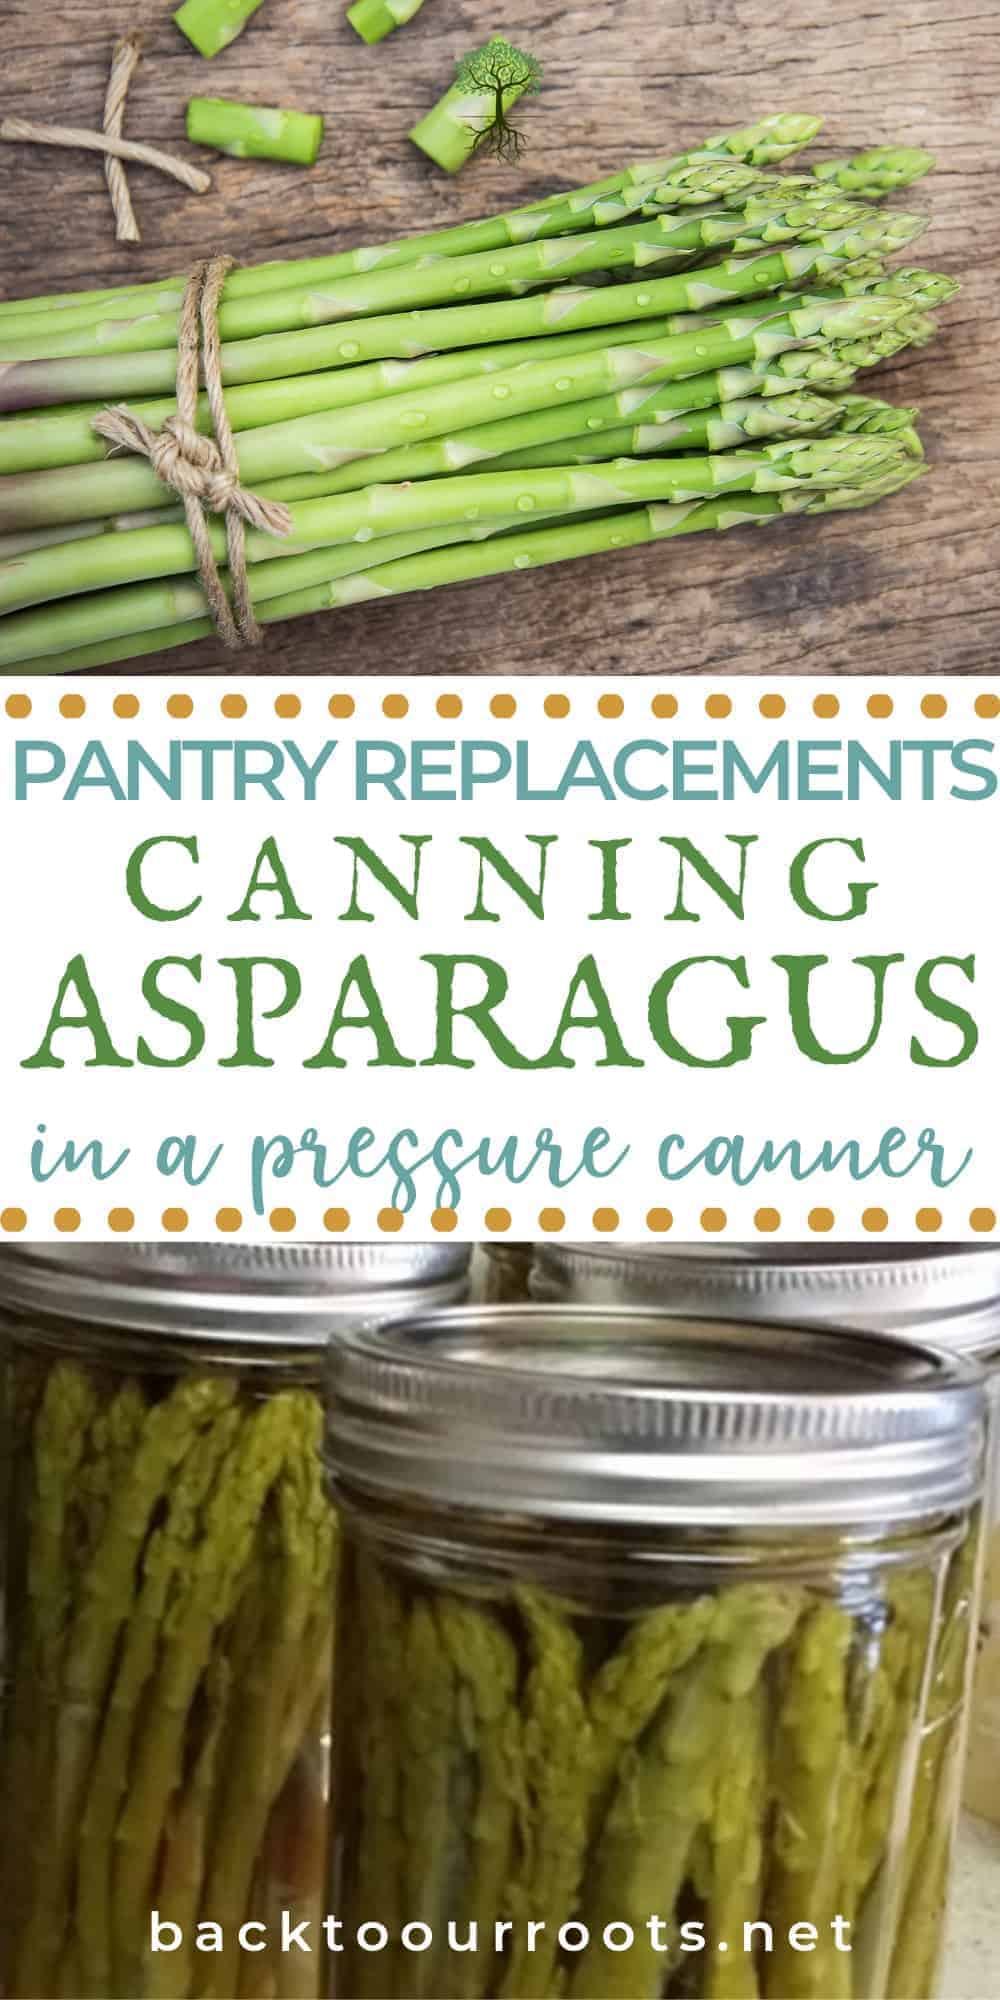 Pressure Canning Asparagus